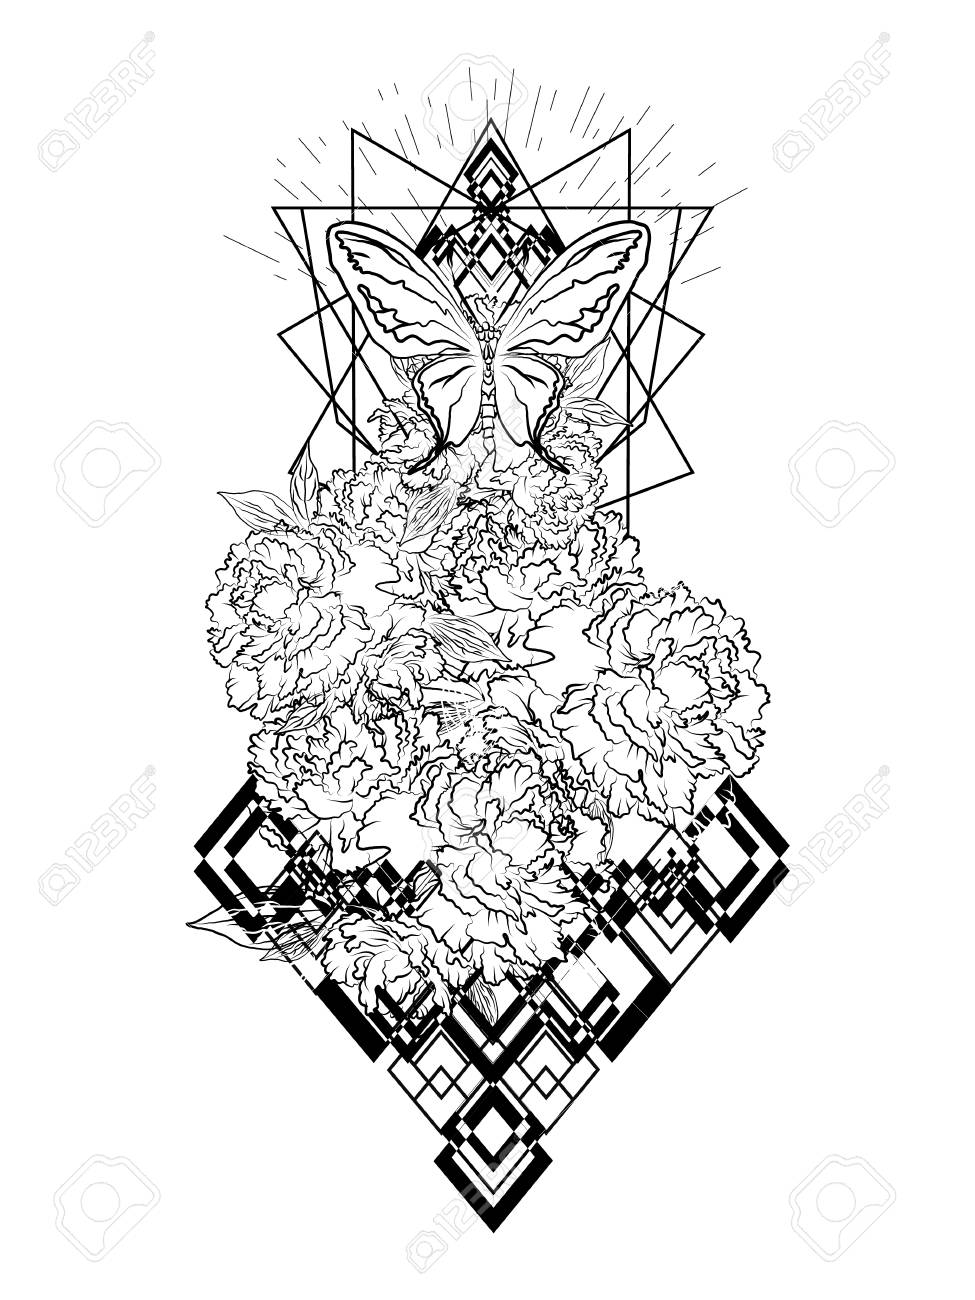 d870b037c4800 Bouquet with Peony flowers. Beautiful black and white graphics for t-